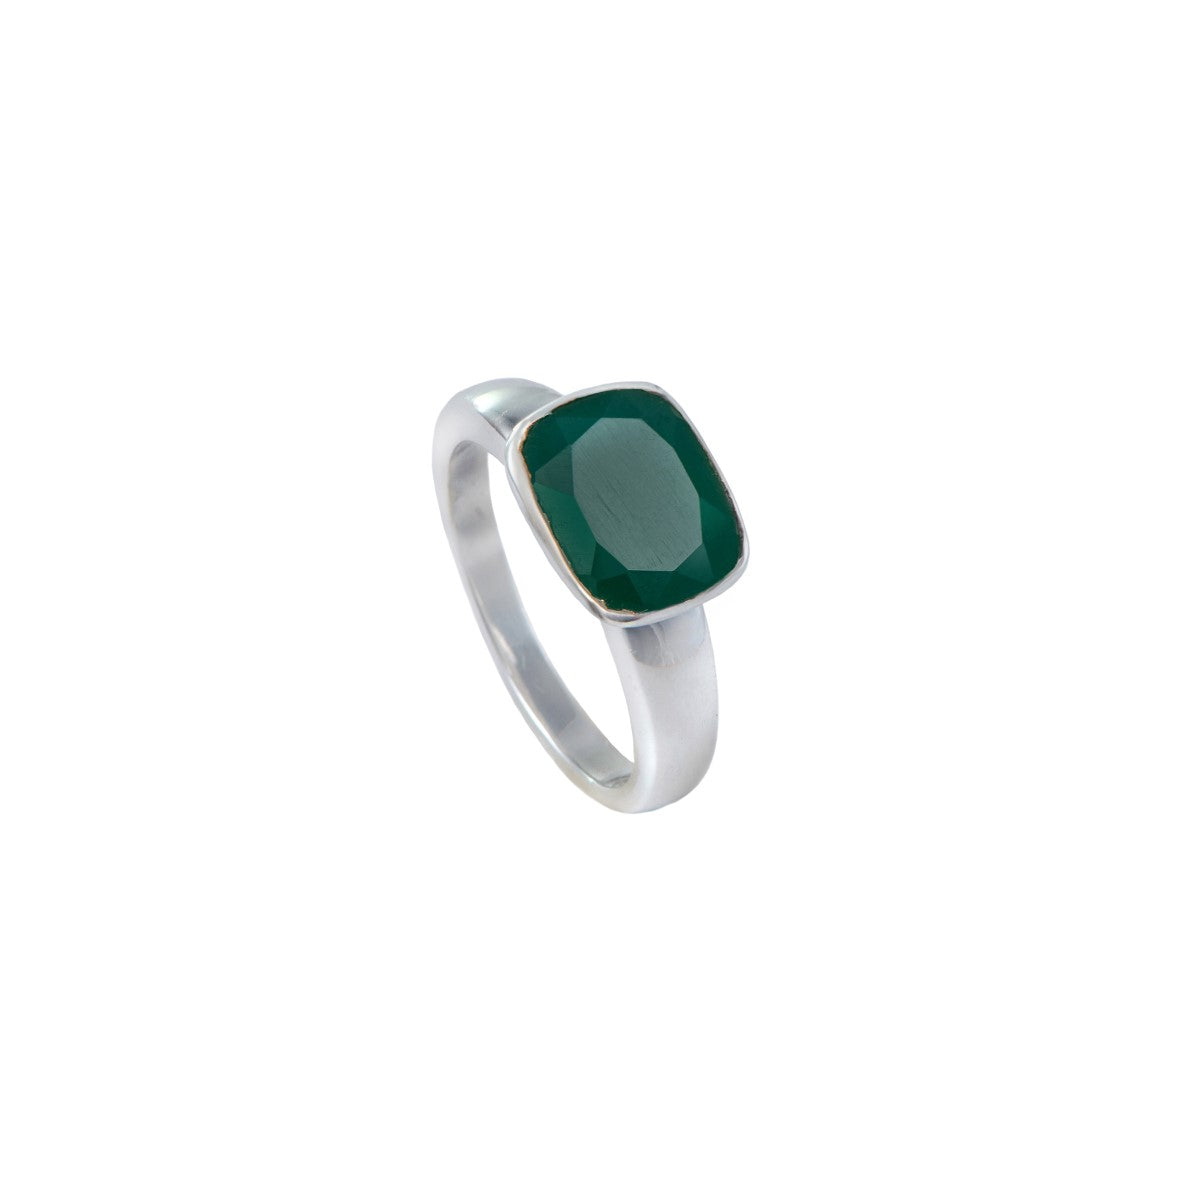 Faceted Rectangular Cut Natural Gemstone Sterling Silver Ring - Green Onyx